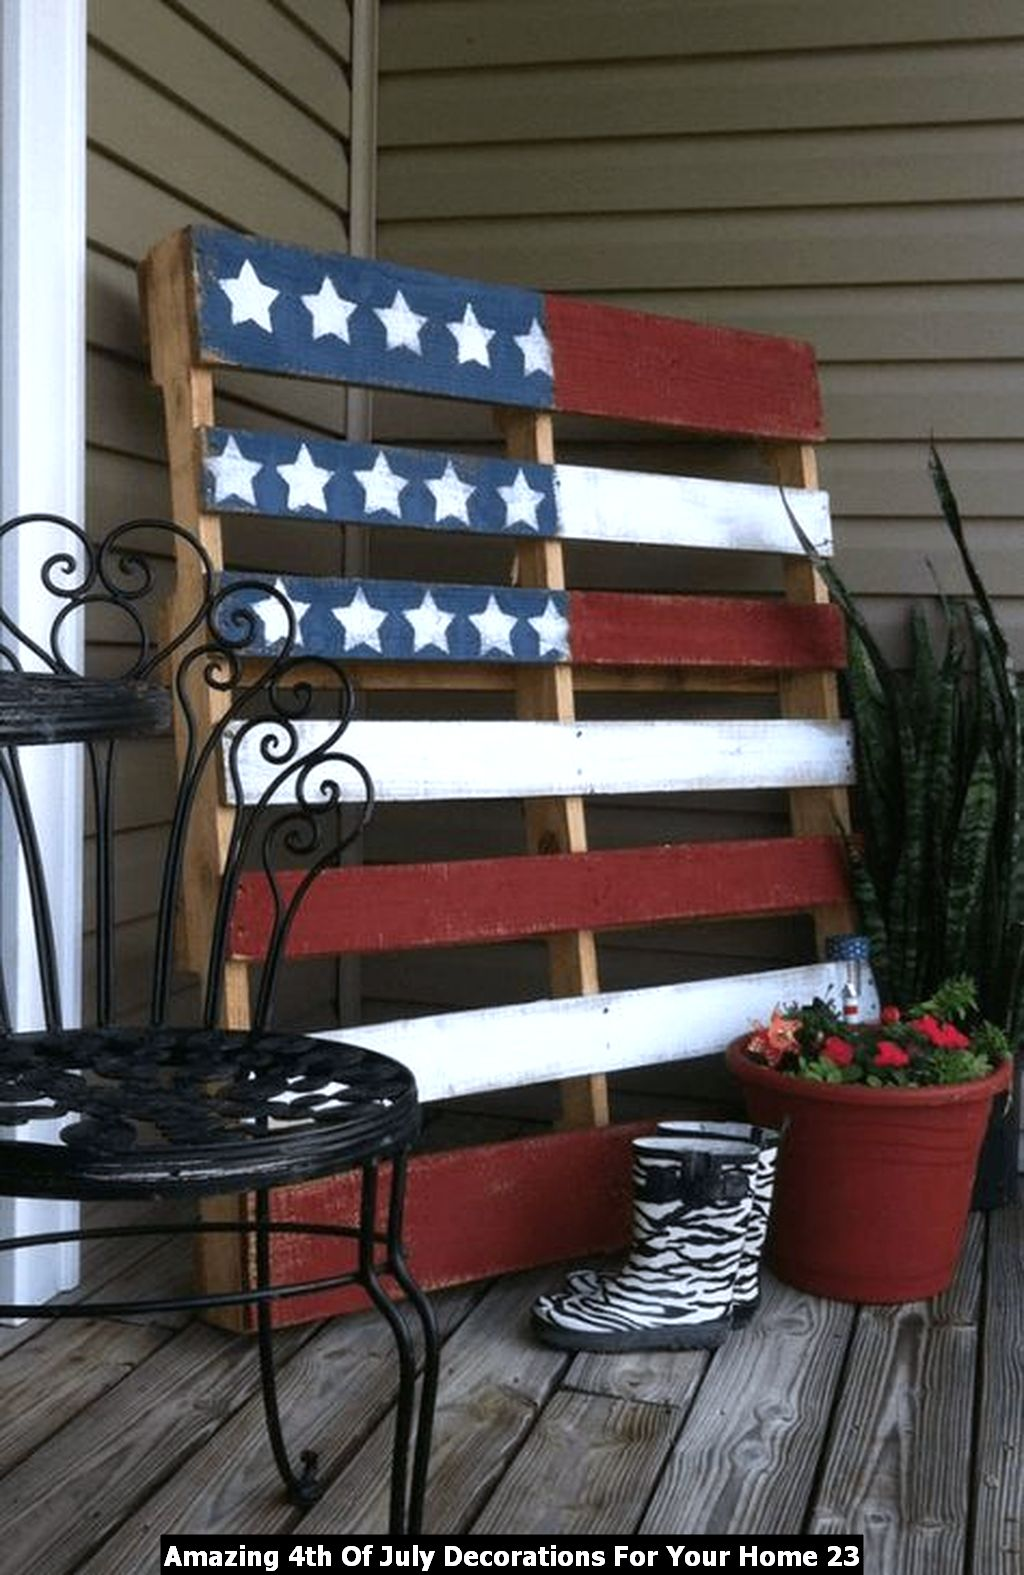 Amazing 4th Of July Decorations For Your Home 23